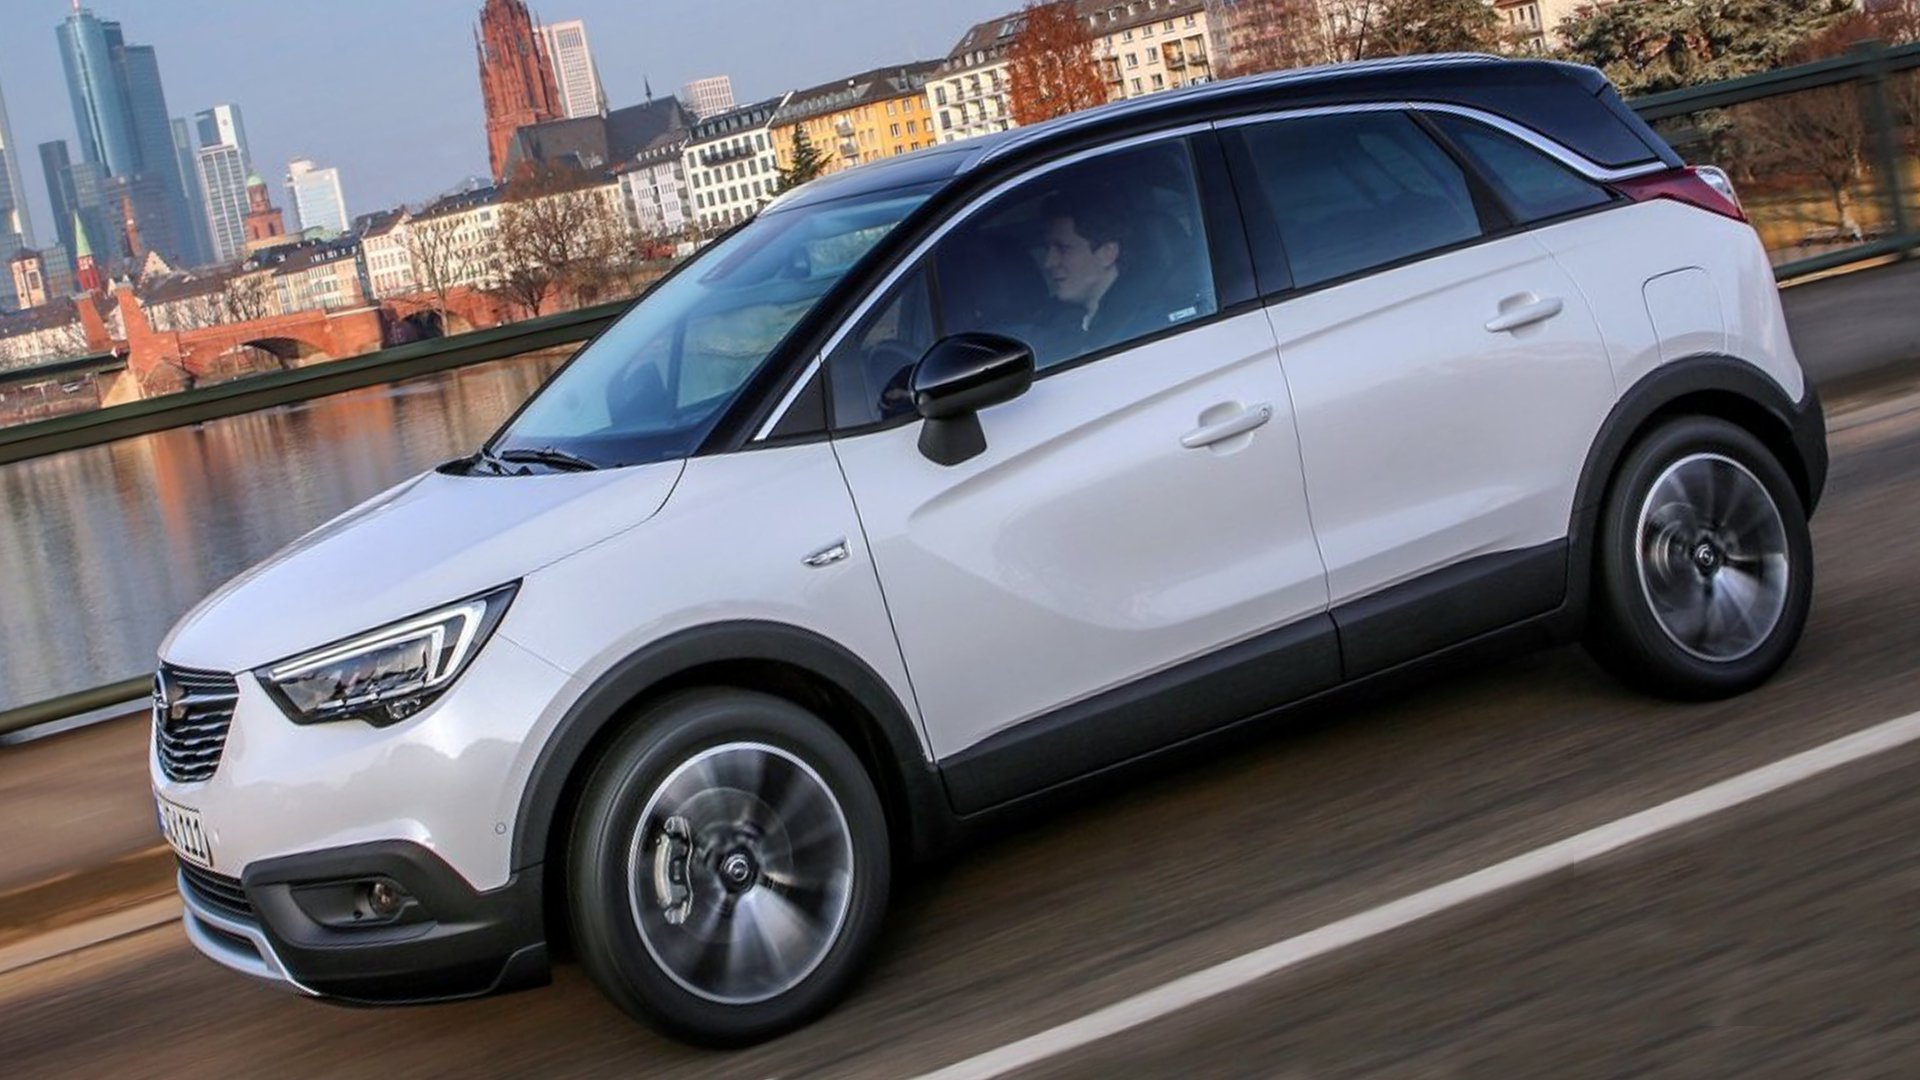 New 2019 Opel Crossland X Exterior Changes